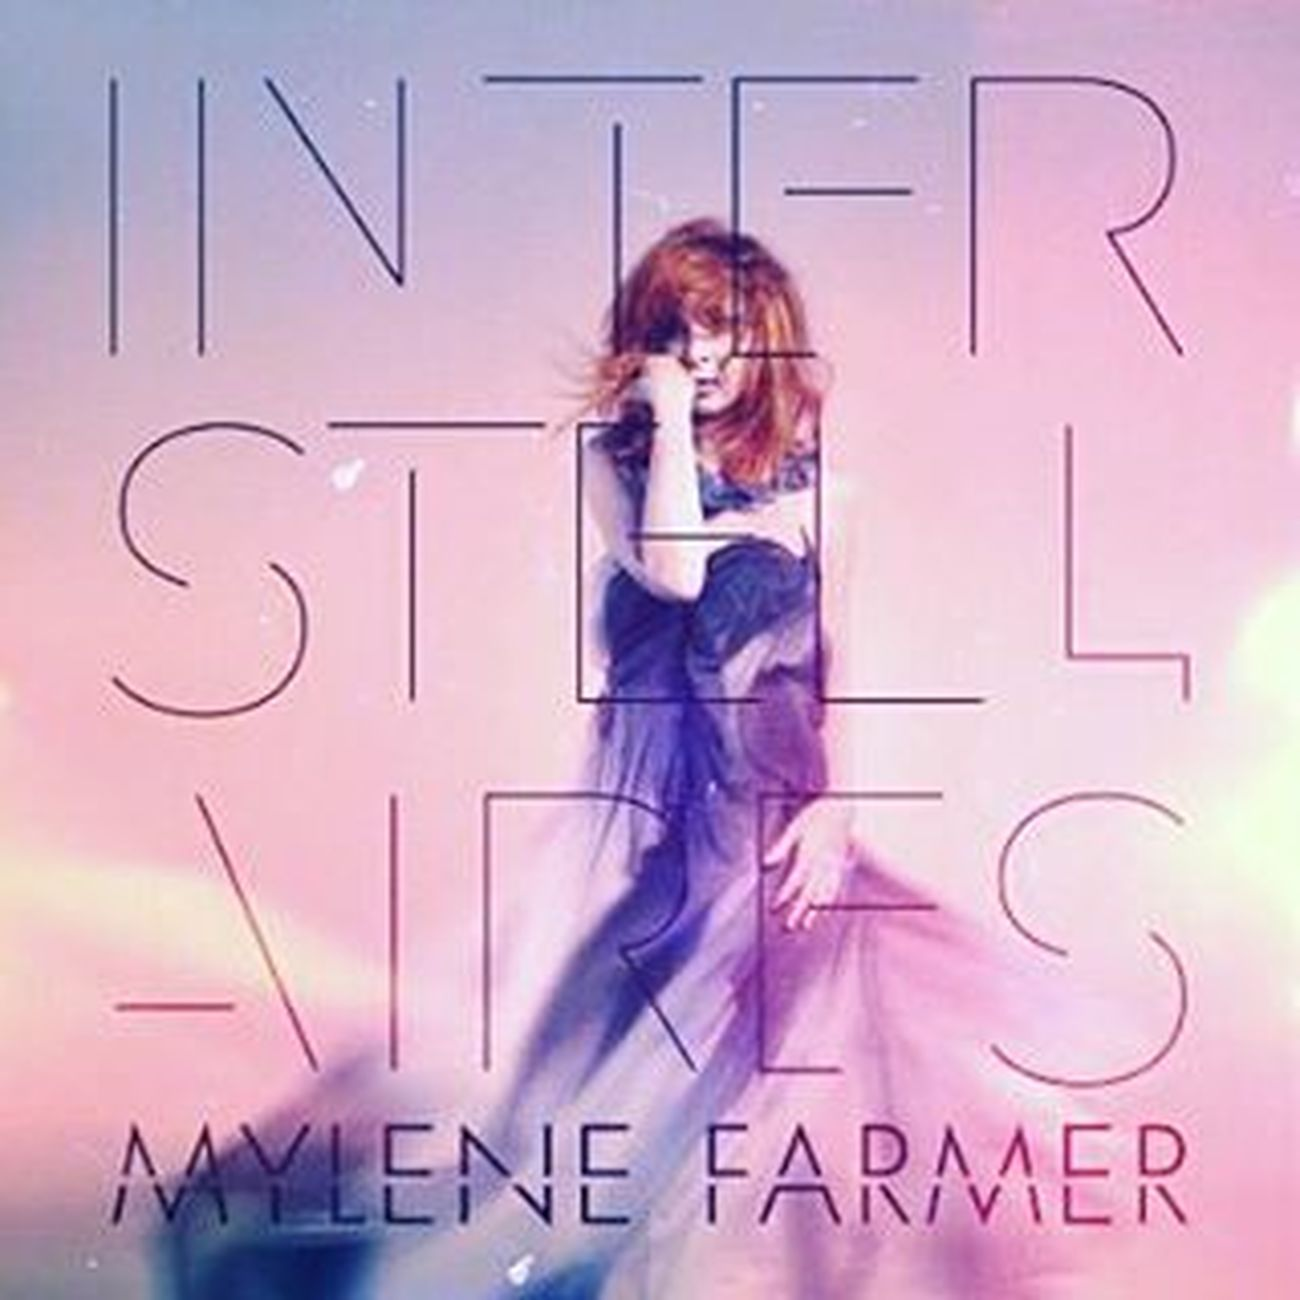 Nouvel album vendredi 6 novembre produit par The Avener et Martin Kierszenbaum pour Cherrytree Music Compagny le fameux label américain!! Mylenefarmer Mylene Interstellar Interstellaires Album NEWALBUM TheAvener @mkcherryboom Music Musique Martinkierszenbaum @cherrytreerec Polydor Stolencar @Sting @madonna @alizeeofficiel Disque Disc Frenchmusic Frenchartist